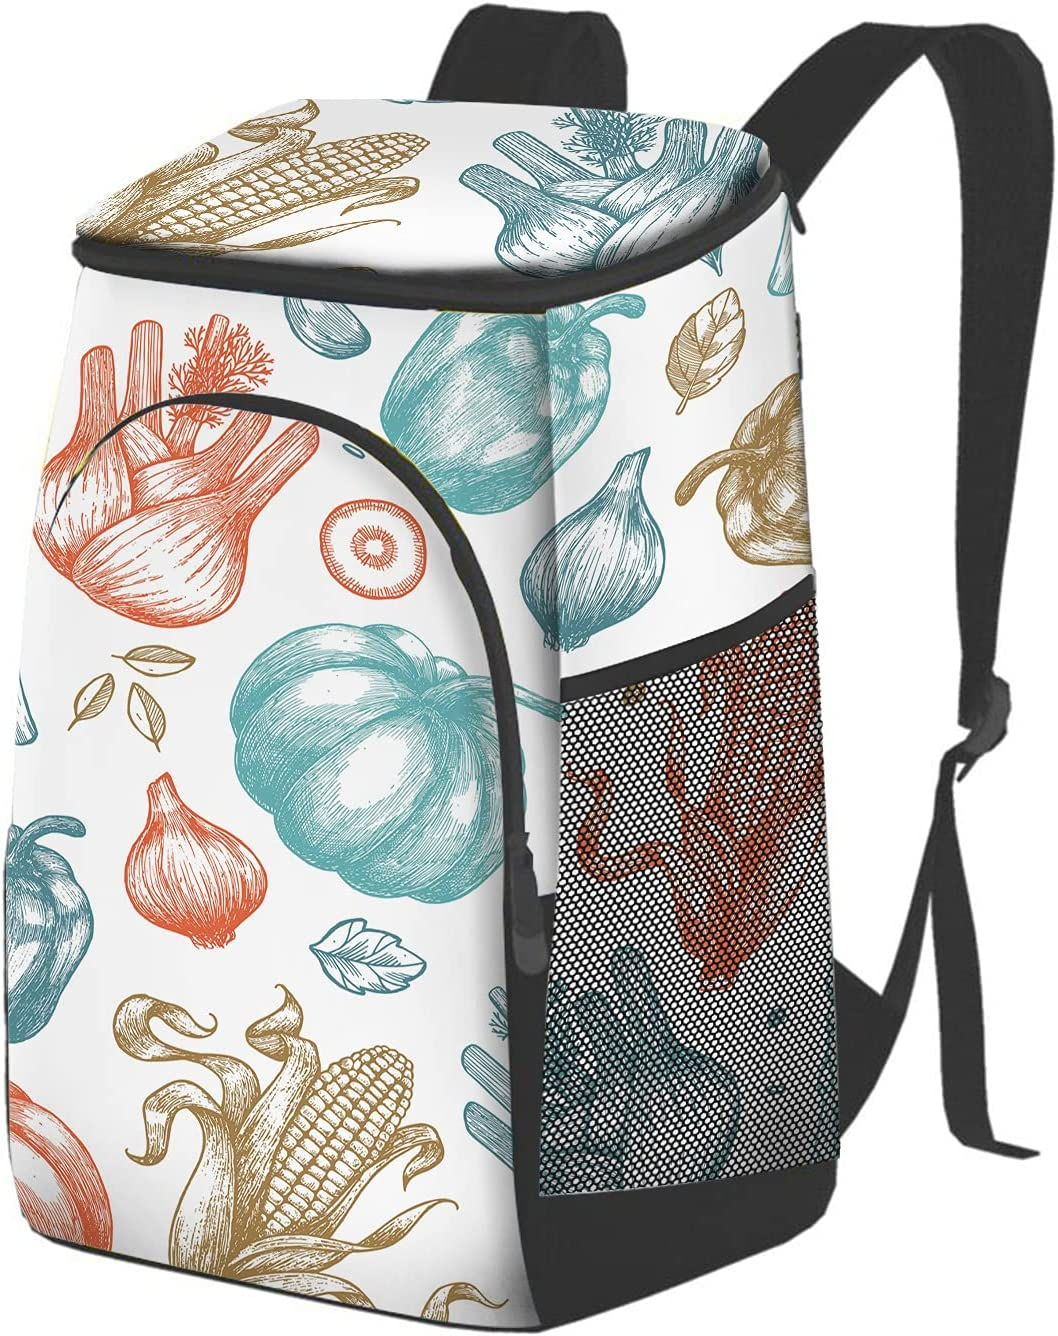 Nicokee Organic Vegetables Lunch Tote Onion Garlic Co Max 84% OFF Sale SALE% OFF Fruit Bags